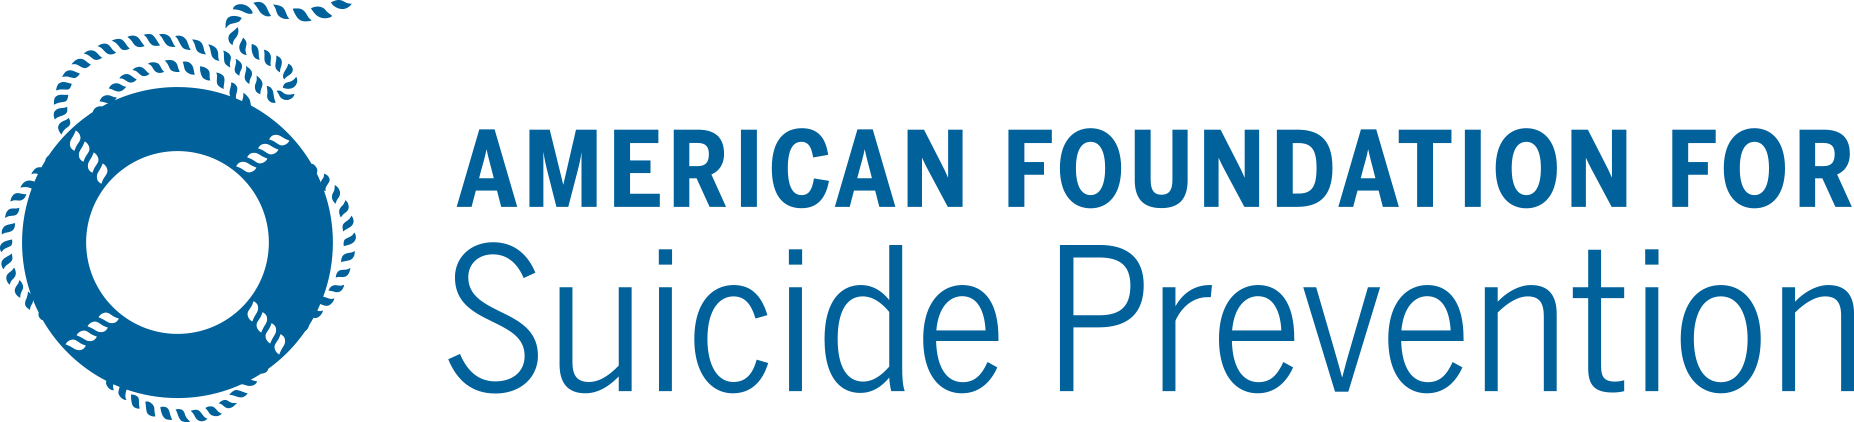 The logo for the American Foundation for Suicide Prevention